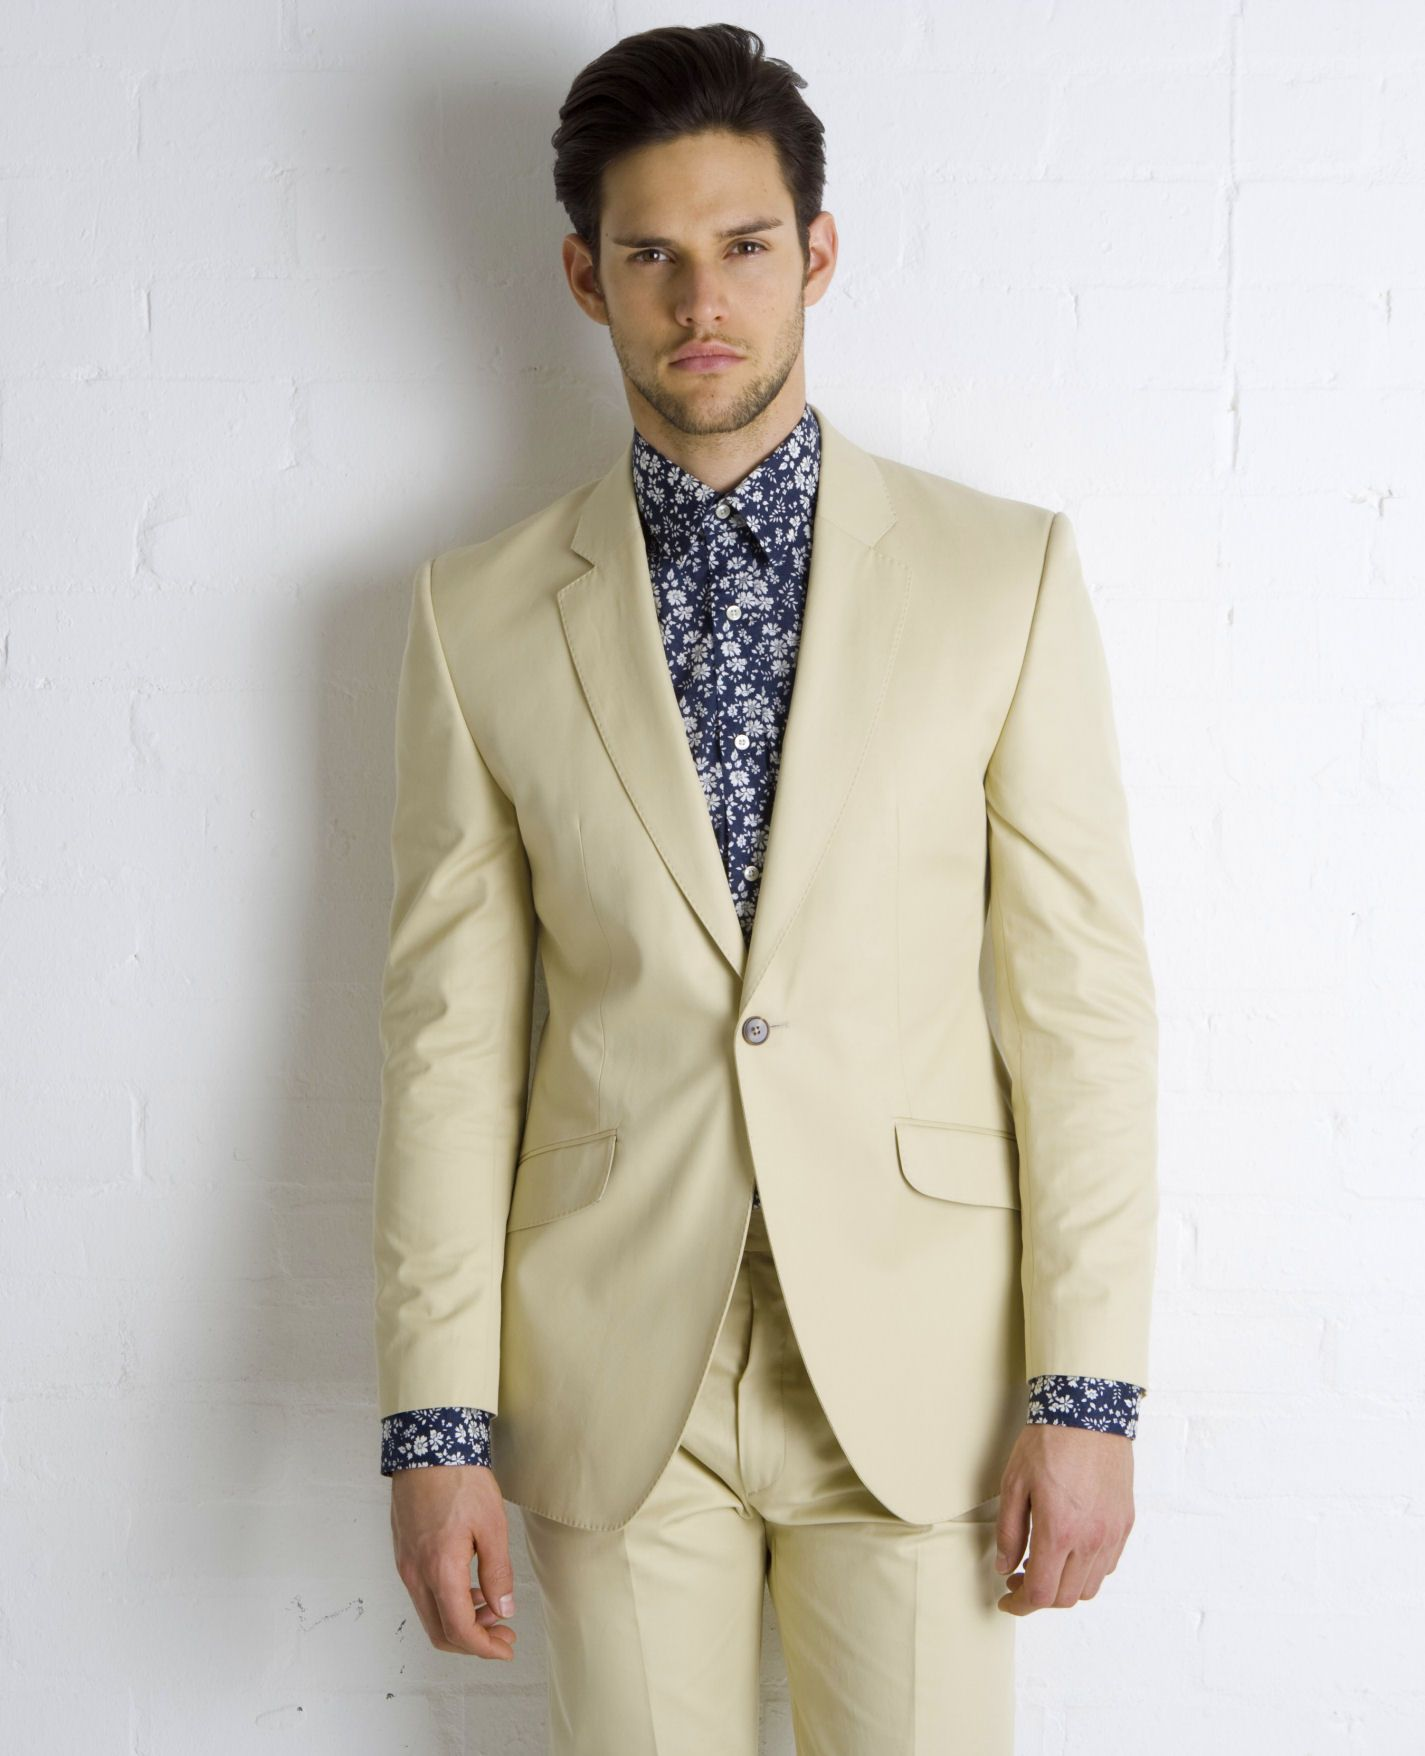 Cotton Tan Suit Floral Shirt from Marc Wallace | Fashion - Dress